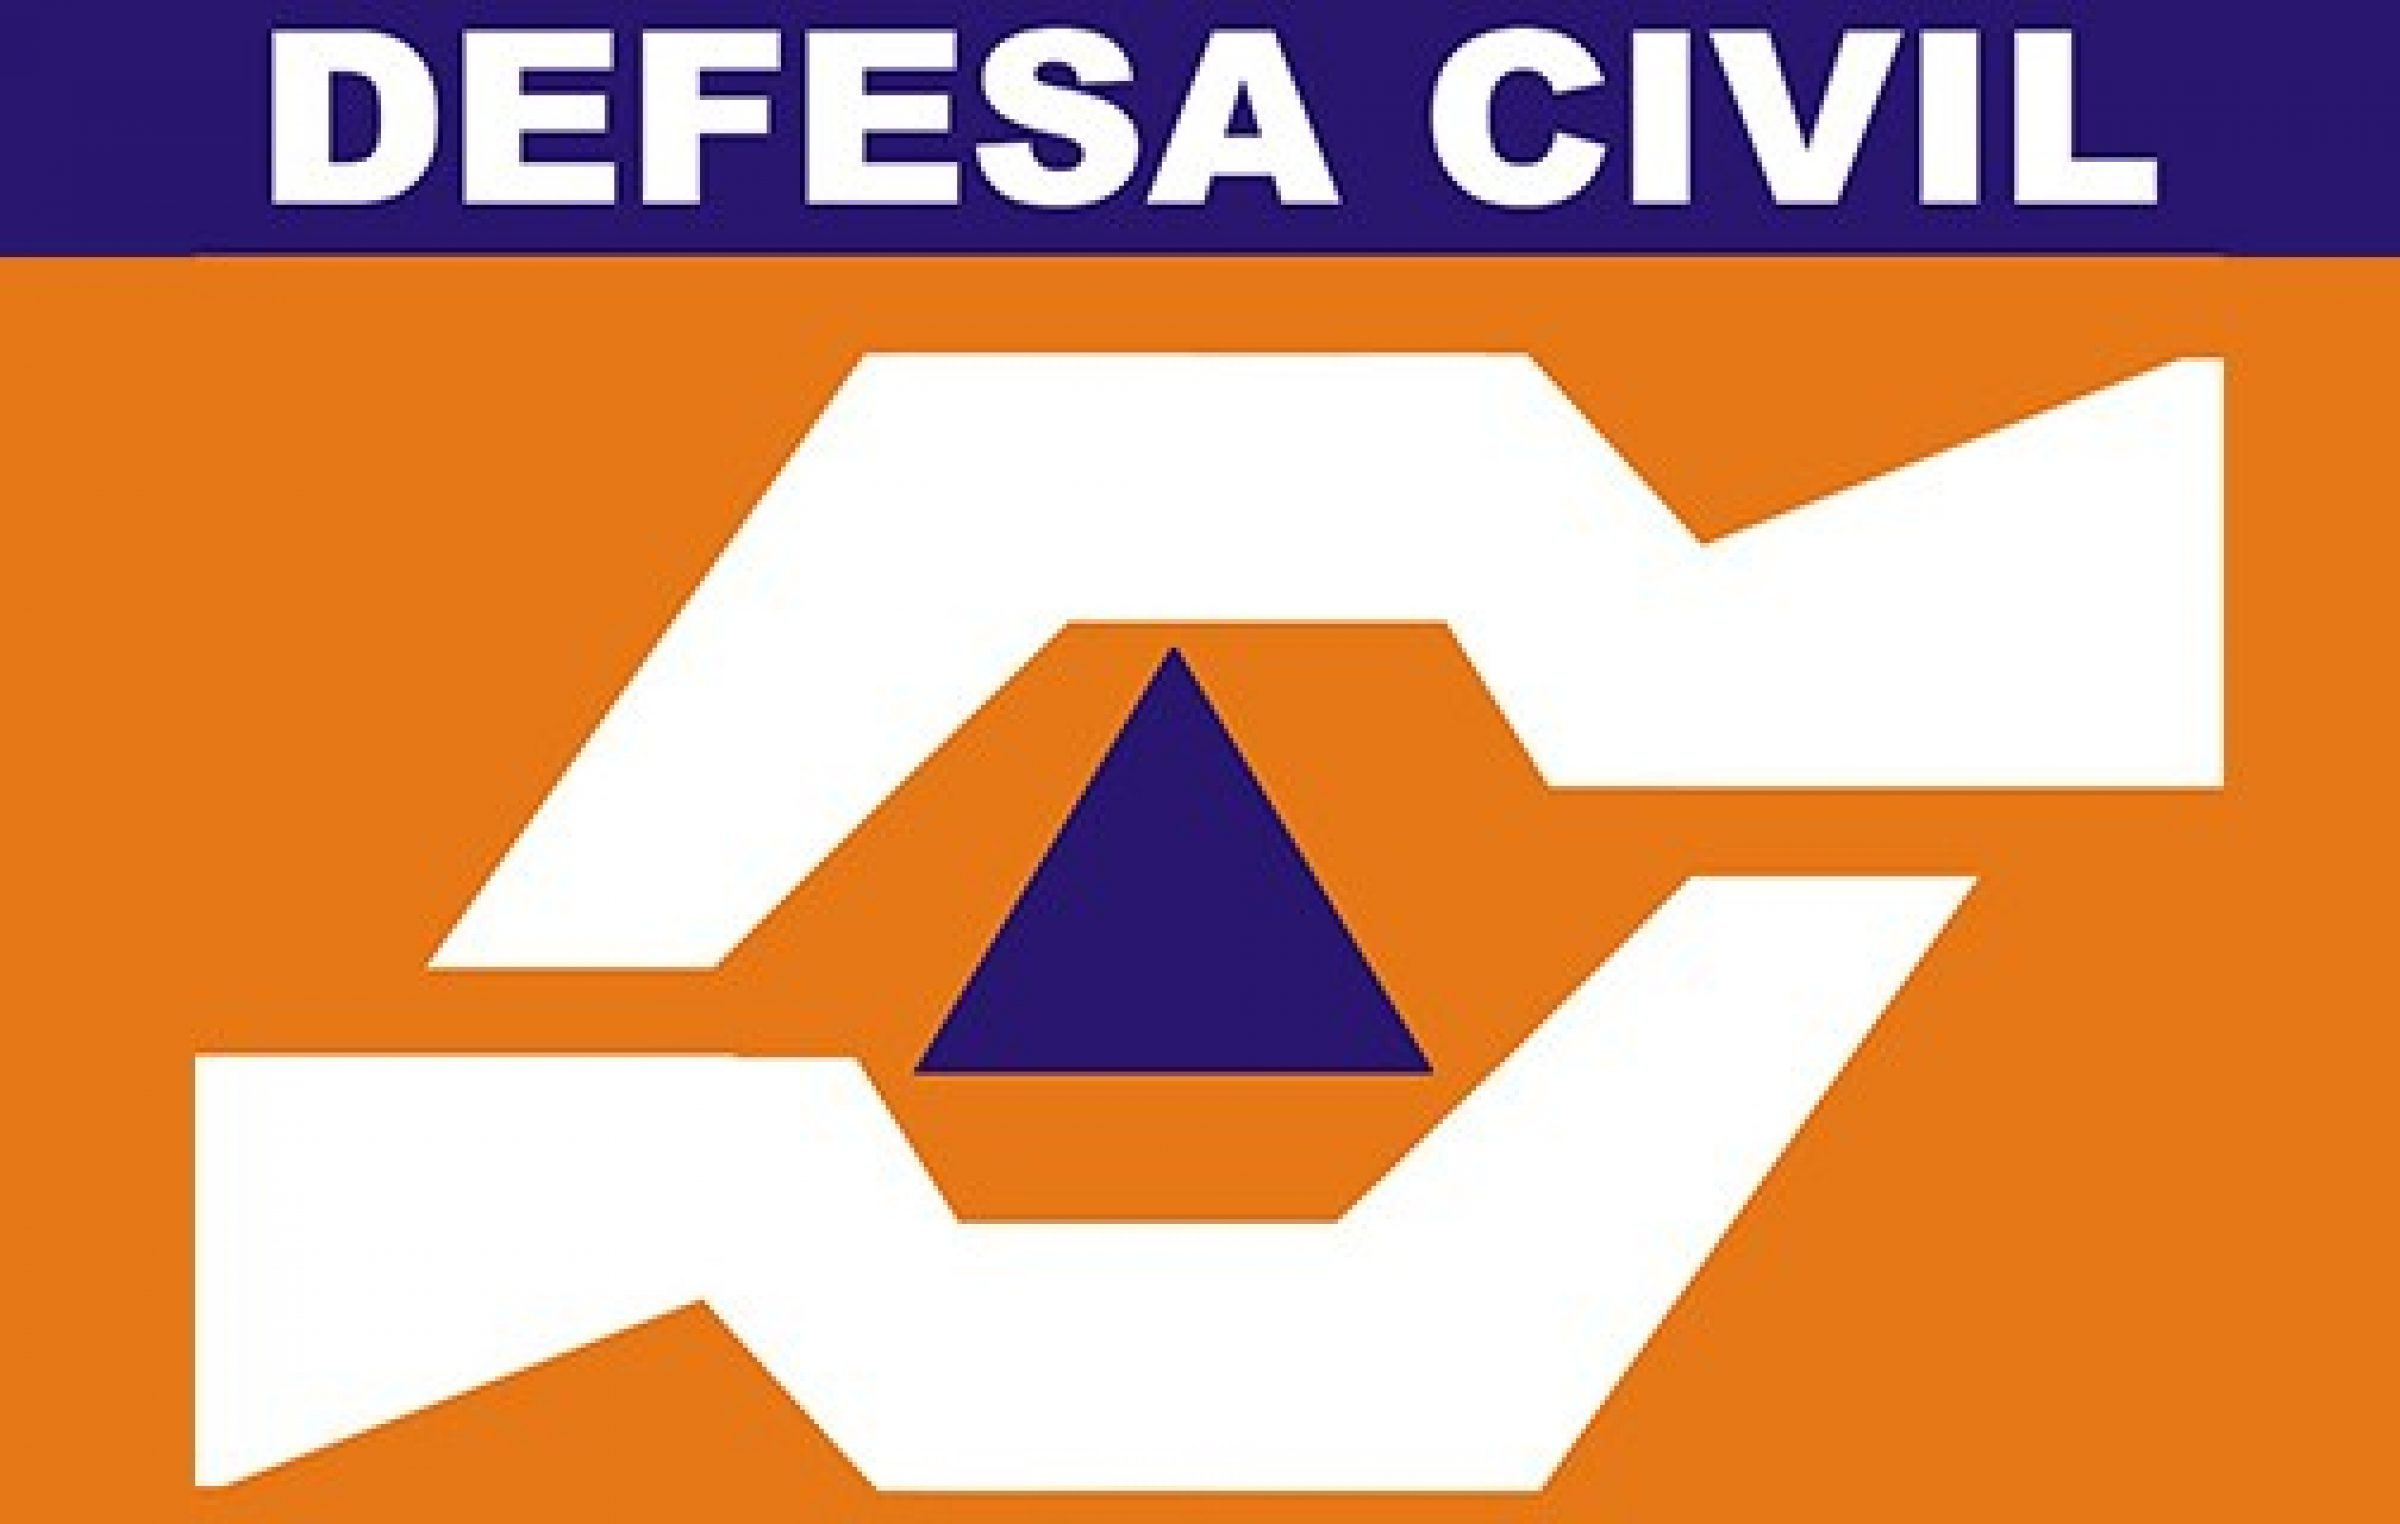 DefesaCivil Logo